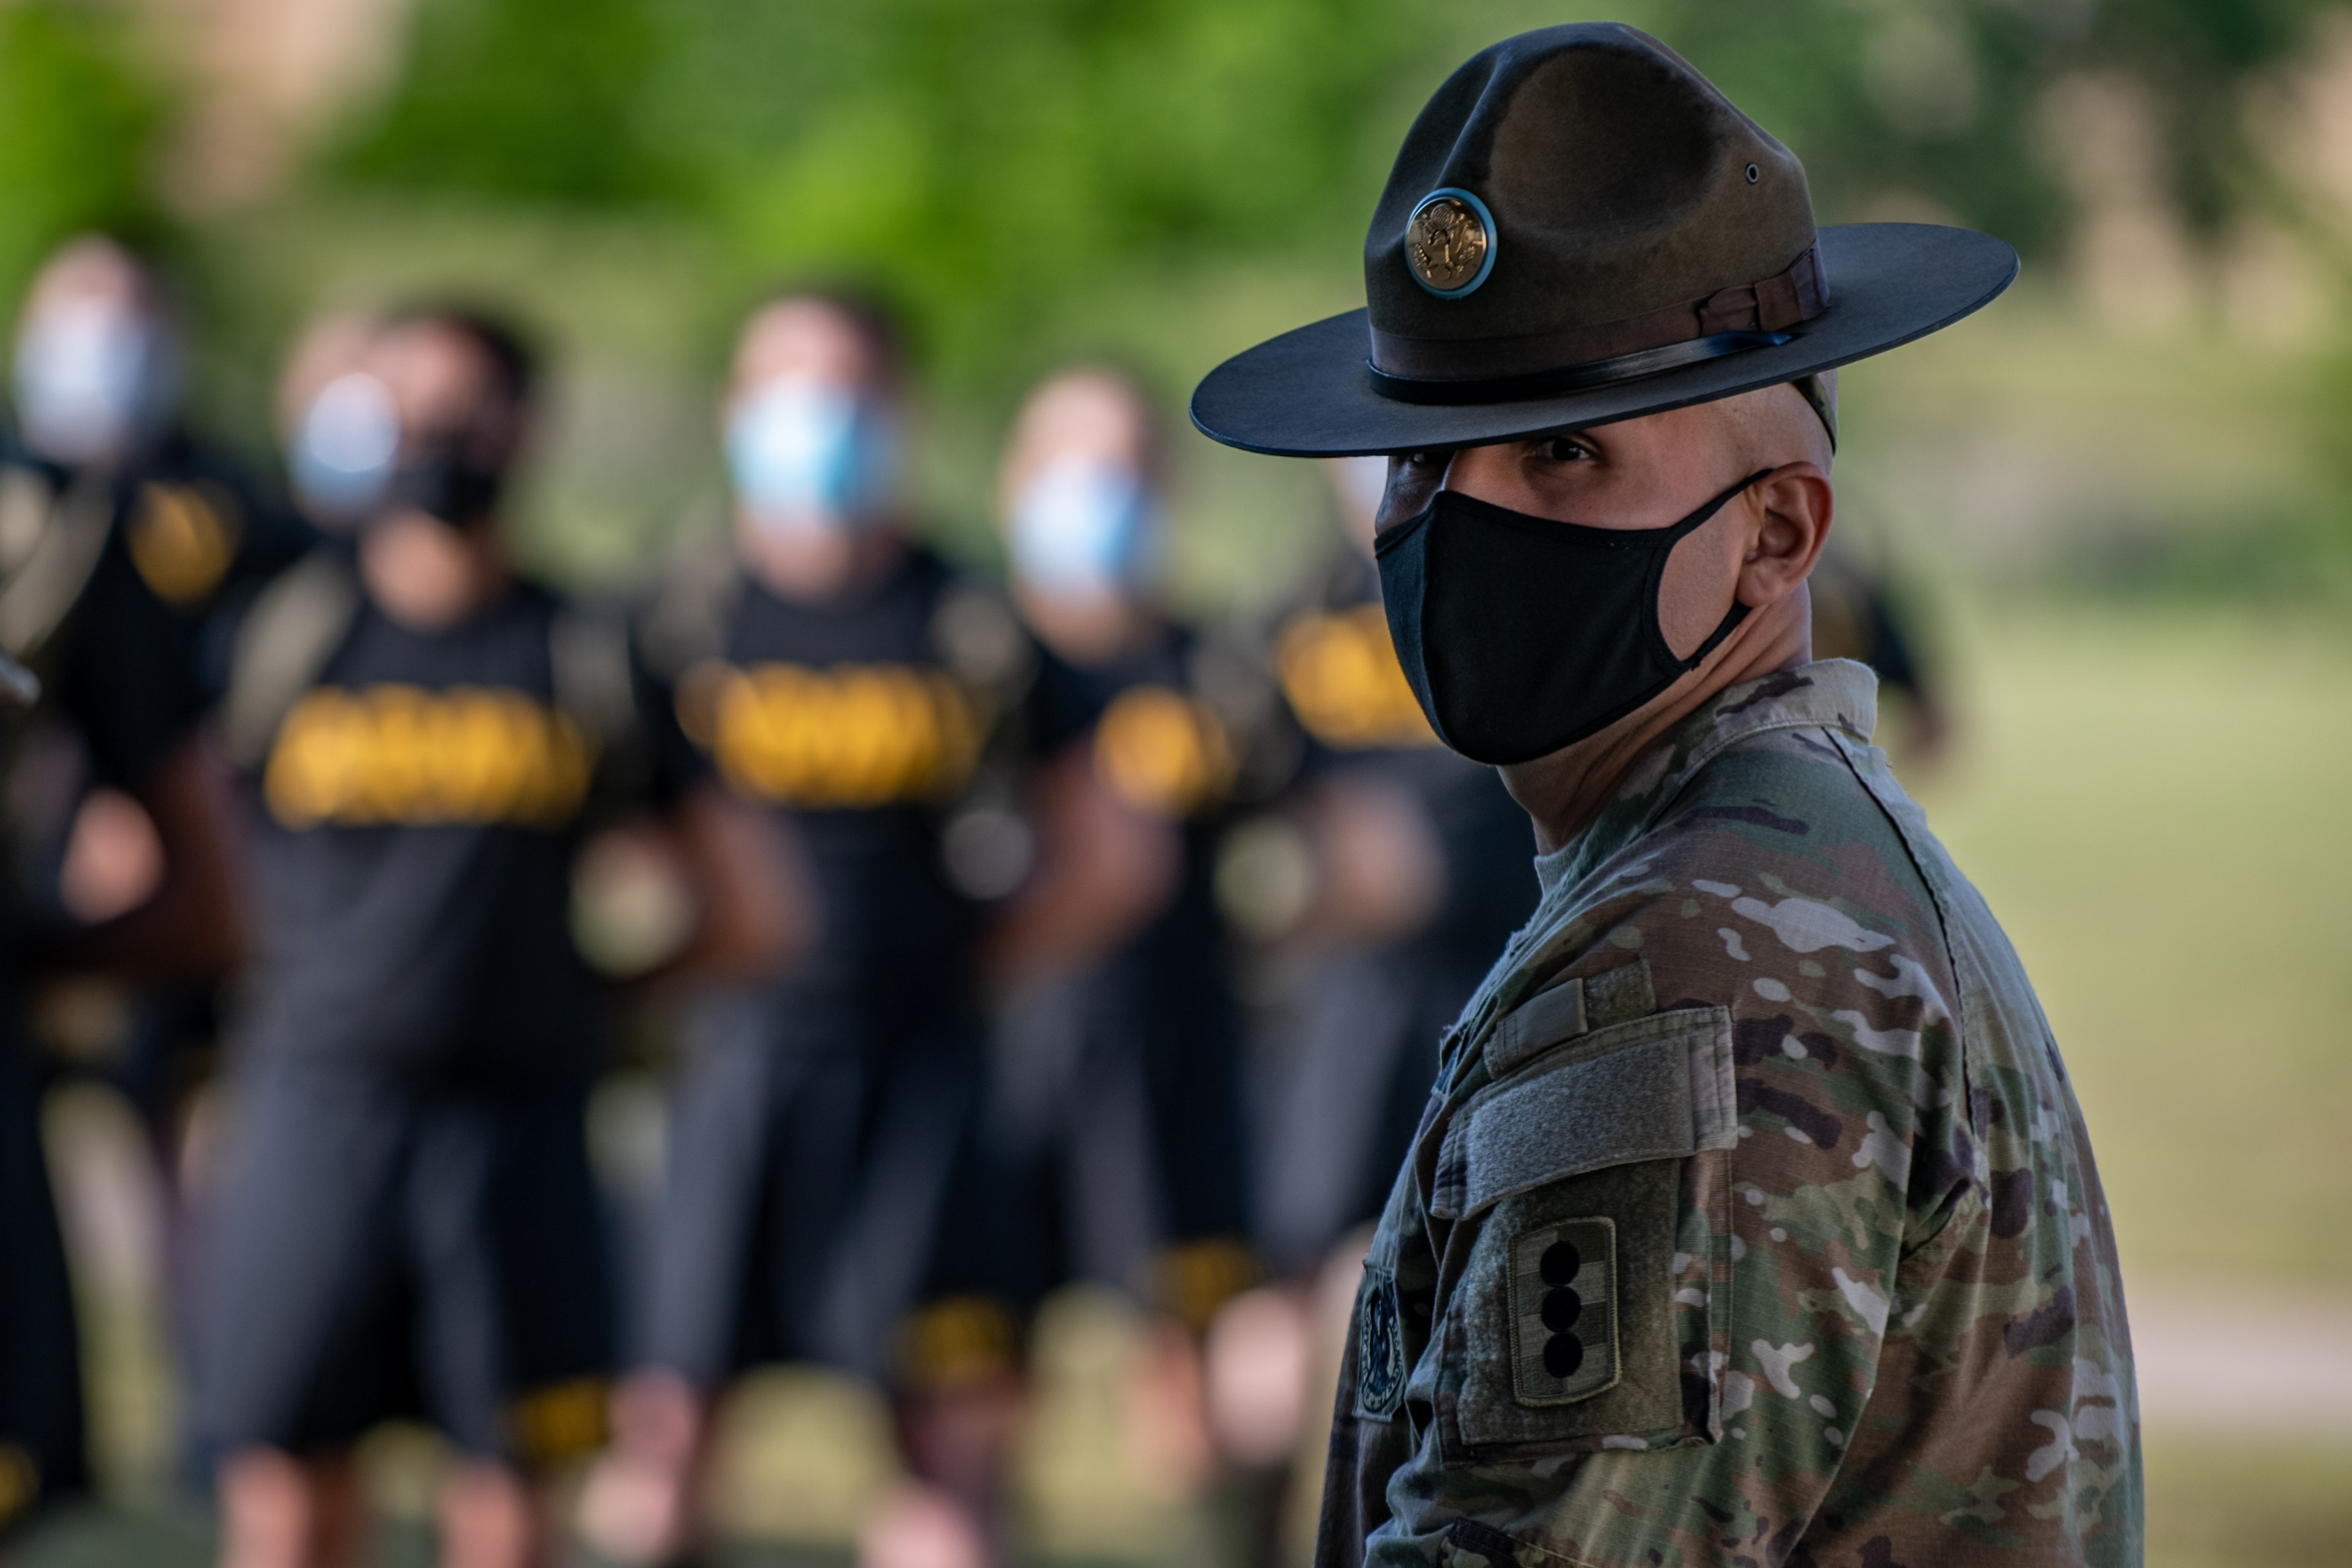 A drill sergeant watches over trainees as they stand in formation while wearing masks and maintaining physical distancing during reception before entering basic combat training May 14, 2020, Fort Sill, Okla.